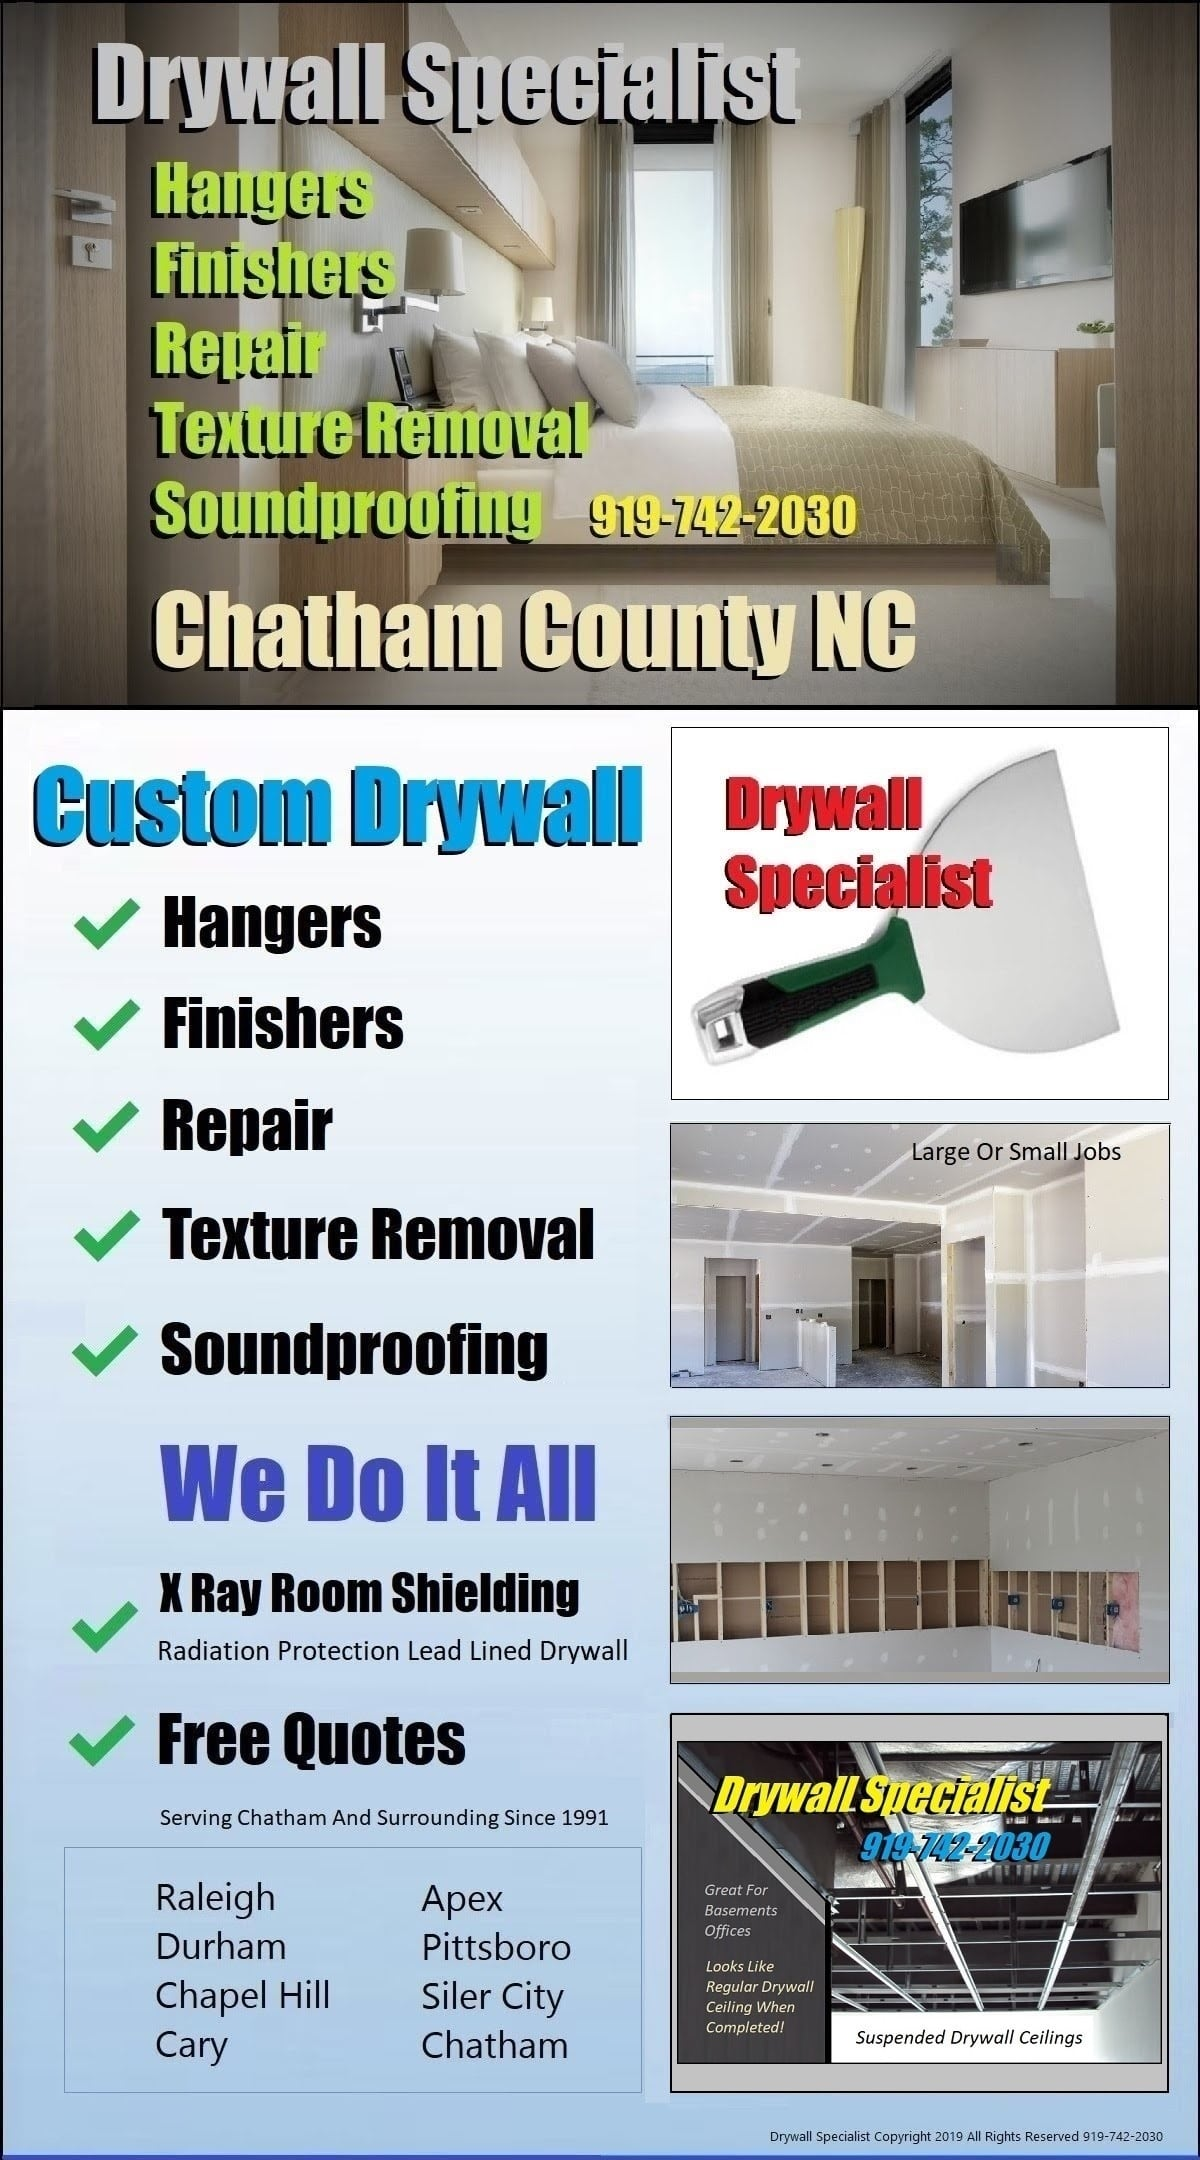 Nextdoor Drywall Specialist Wallboard Hanger Finisher Repair And Popcorn Texture Removal Contractor | North Carolina